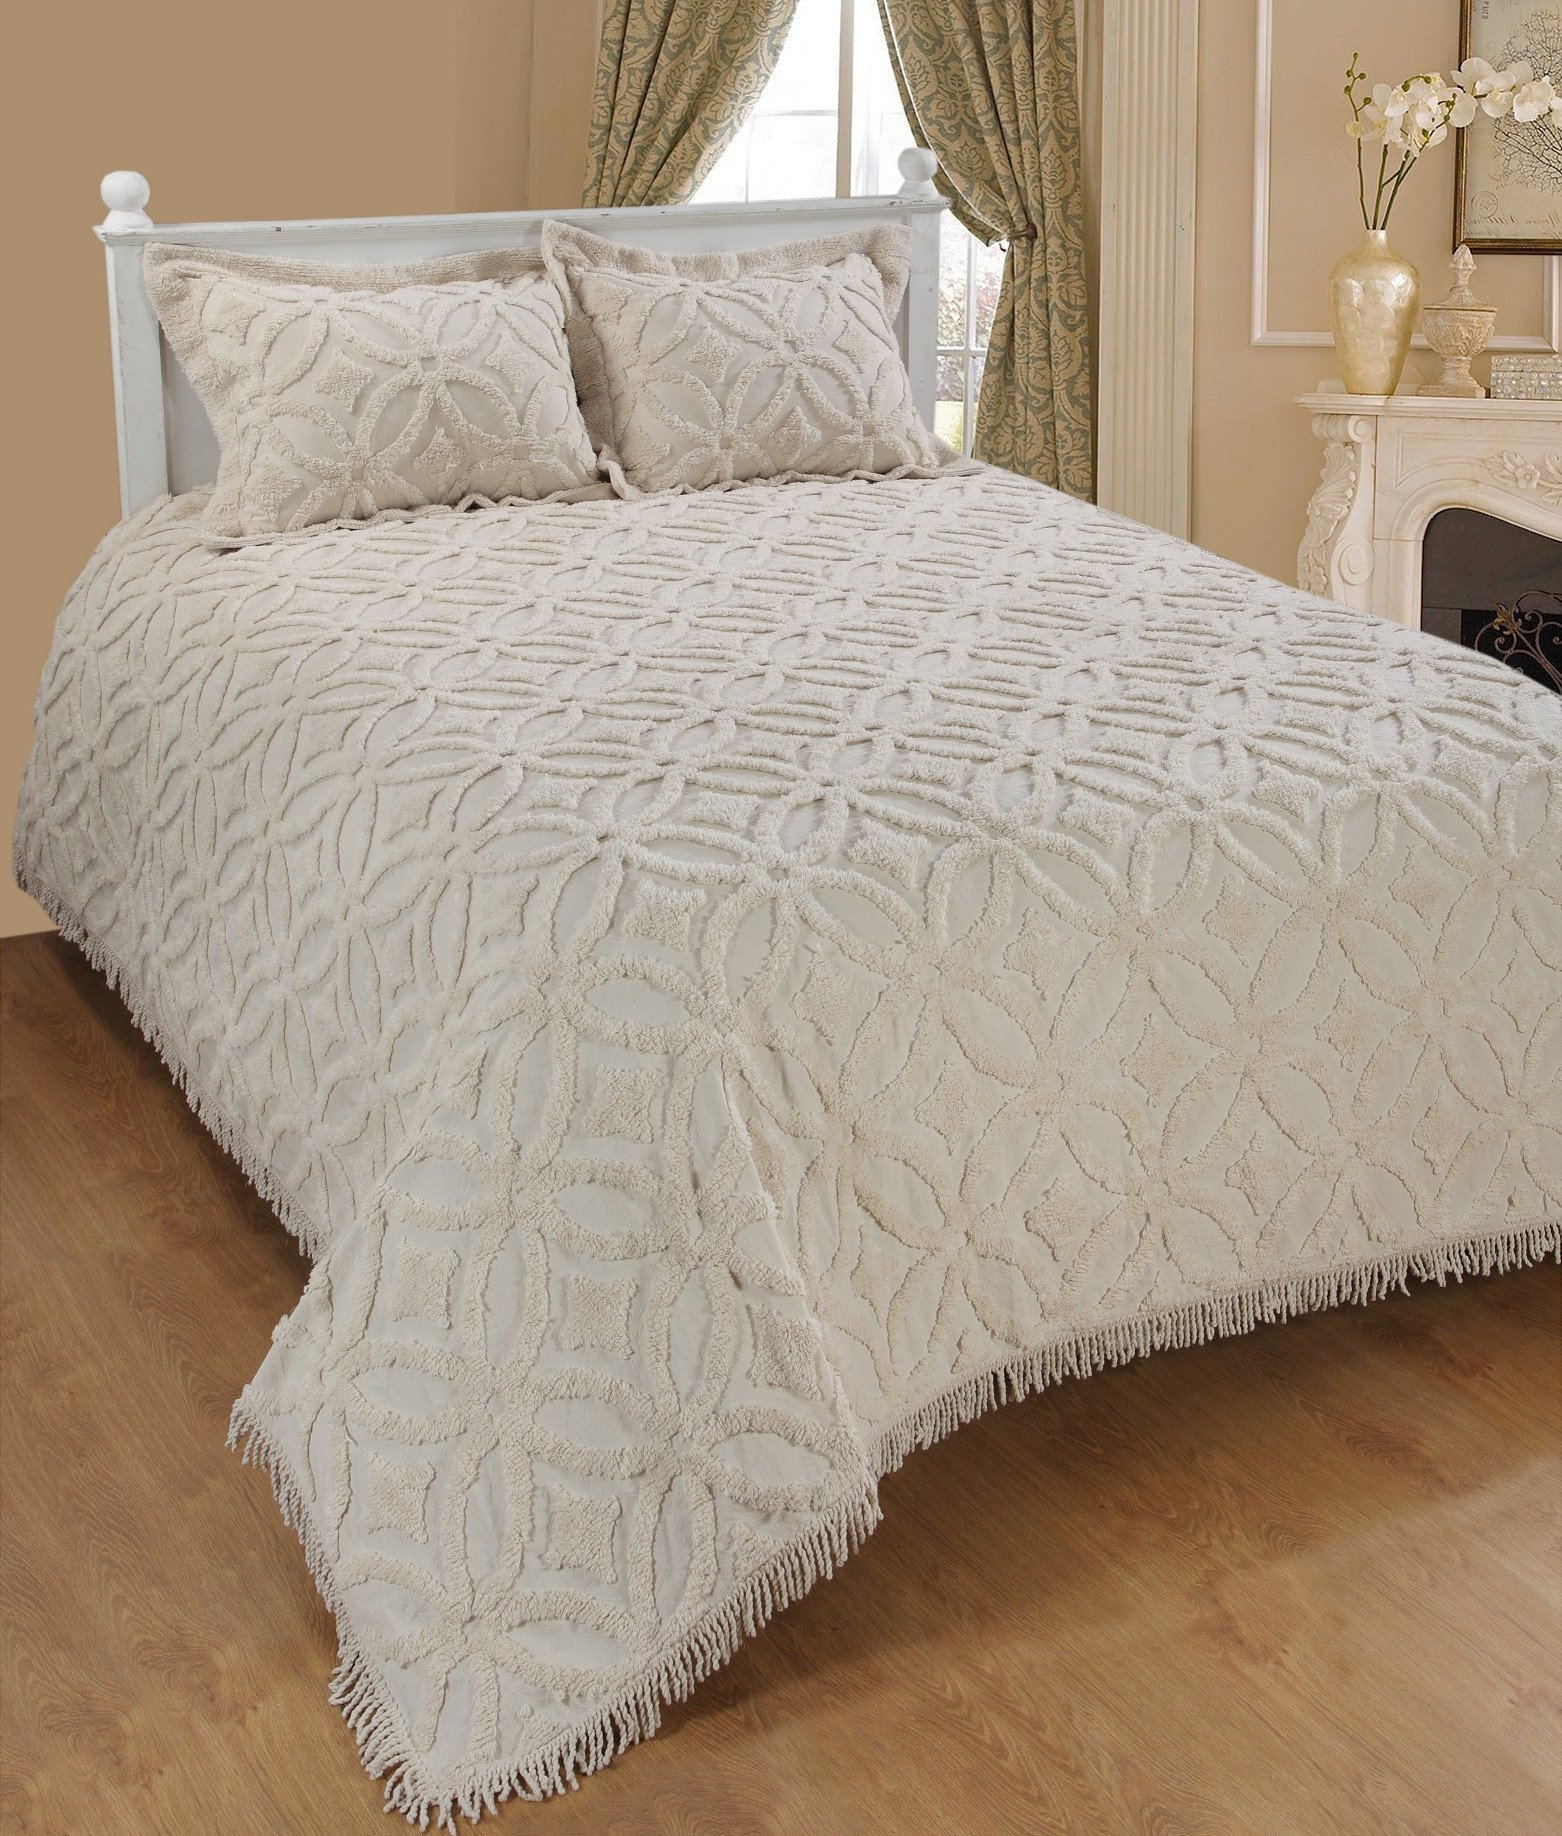 Saral Home Fashions Grace Chenille Bedspread with Two Sham, Queen, Ivory (Bedspread-118x102 inches, Sham-26x20+2 inches)